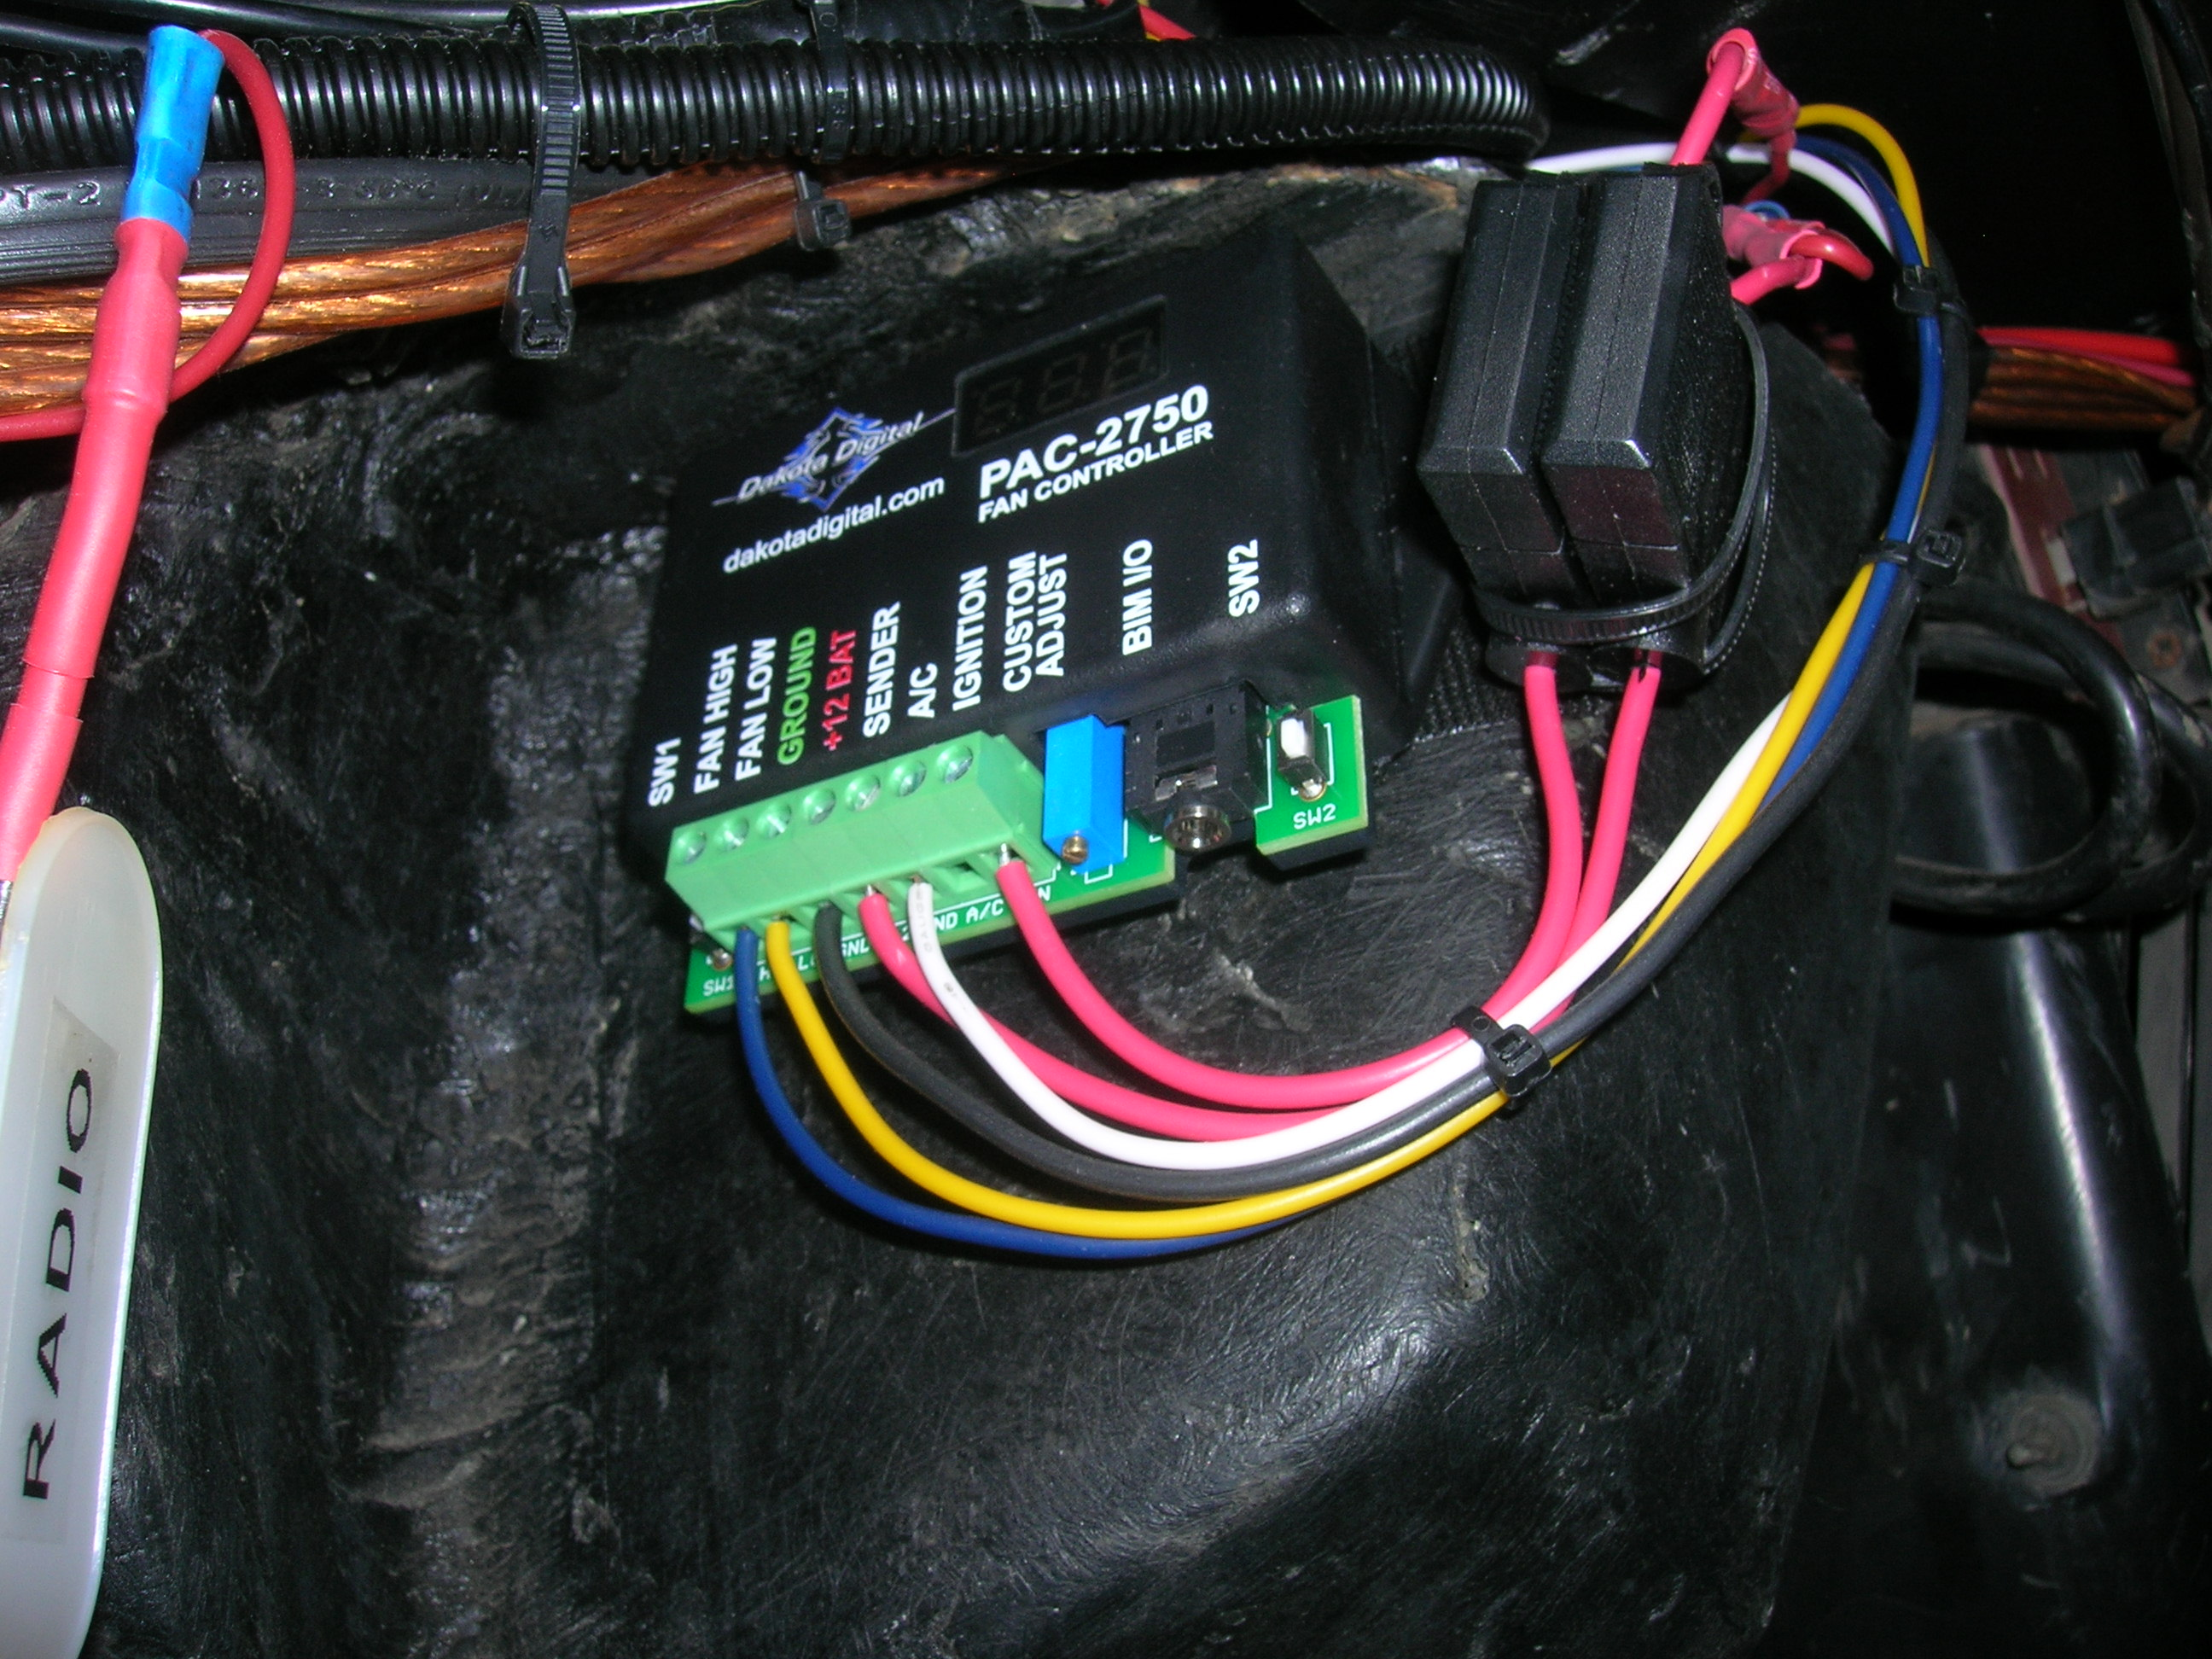 With Jeep Cj7 Dash Wiring Diagram On 86 Corvette Dash Wiring Diagram